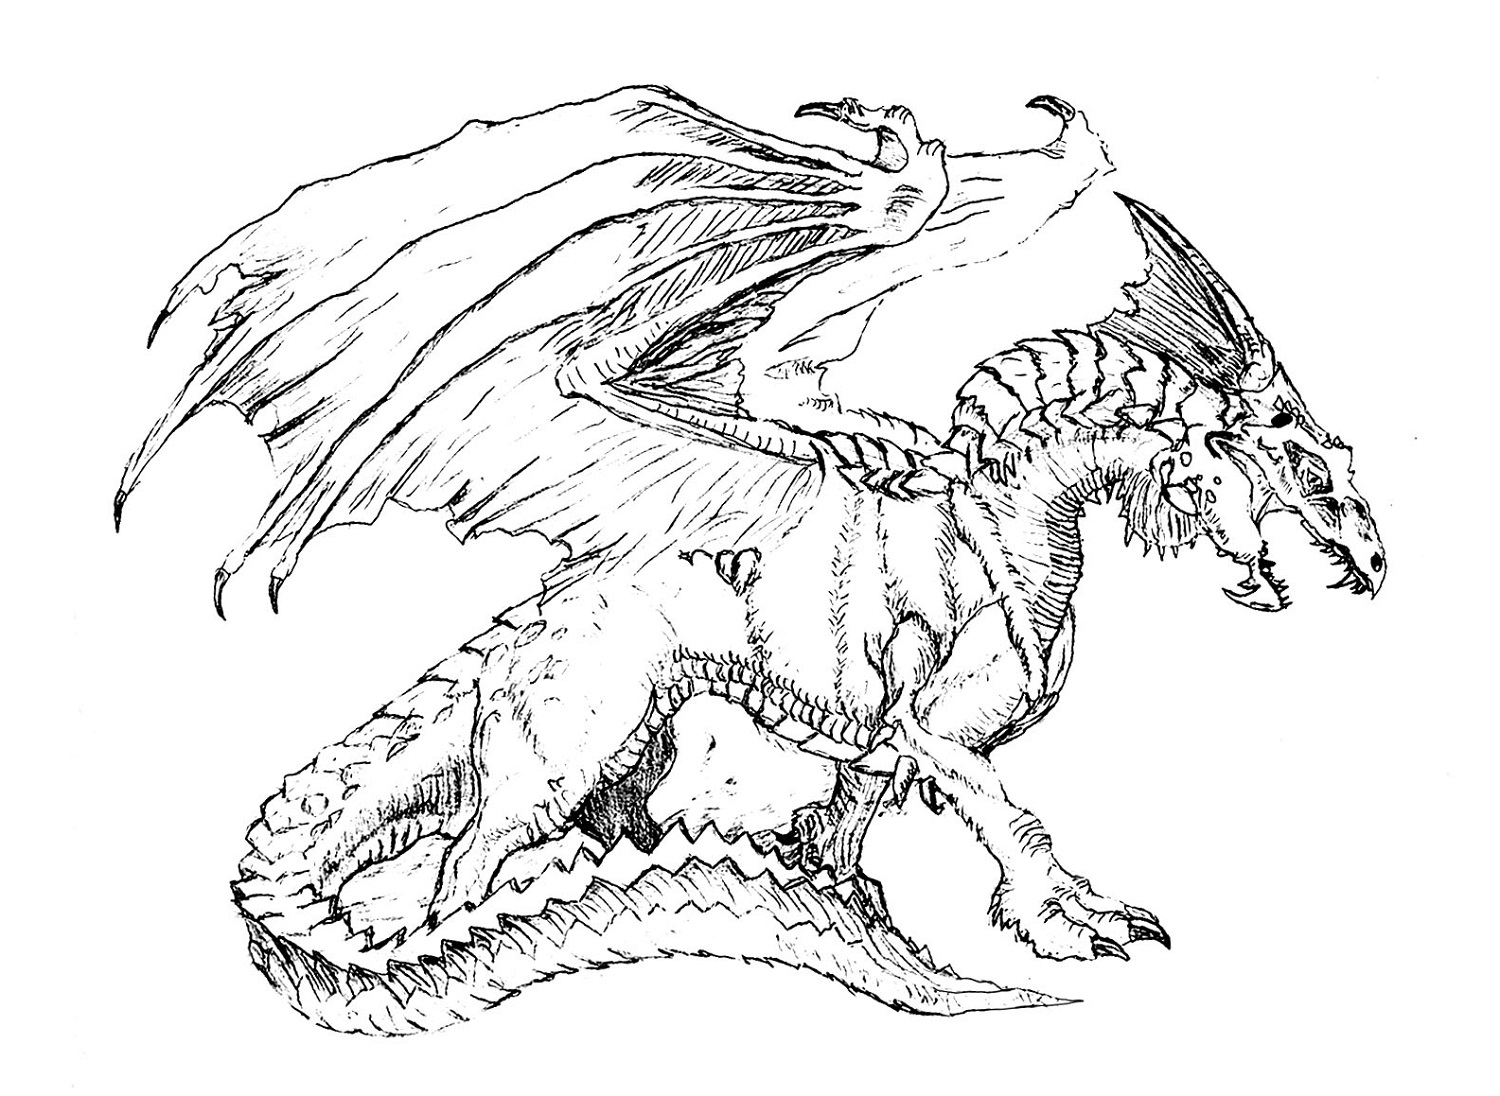 dragon coloring pages chinese dragon coloring pages to download and print for free dragon coloring pages